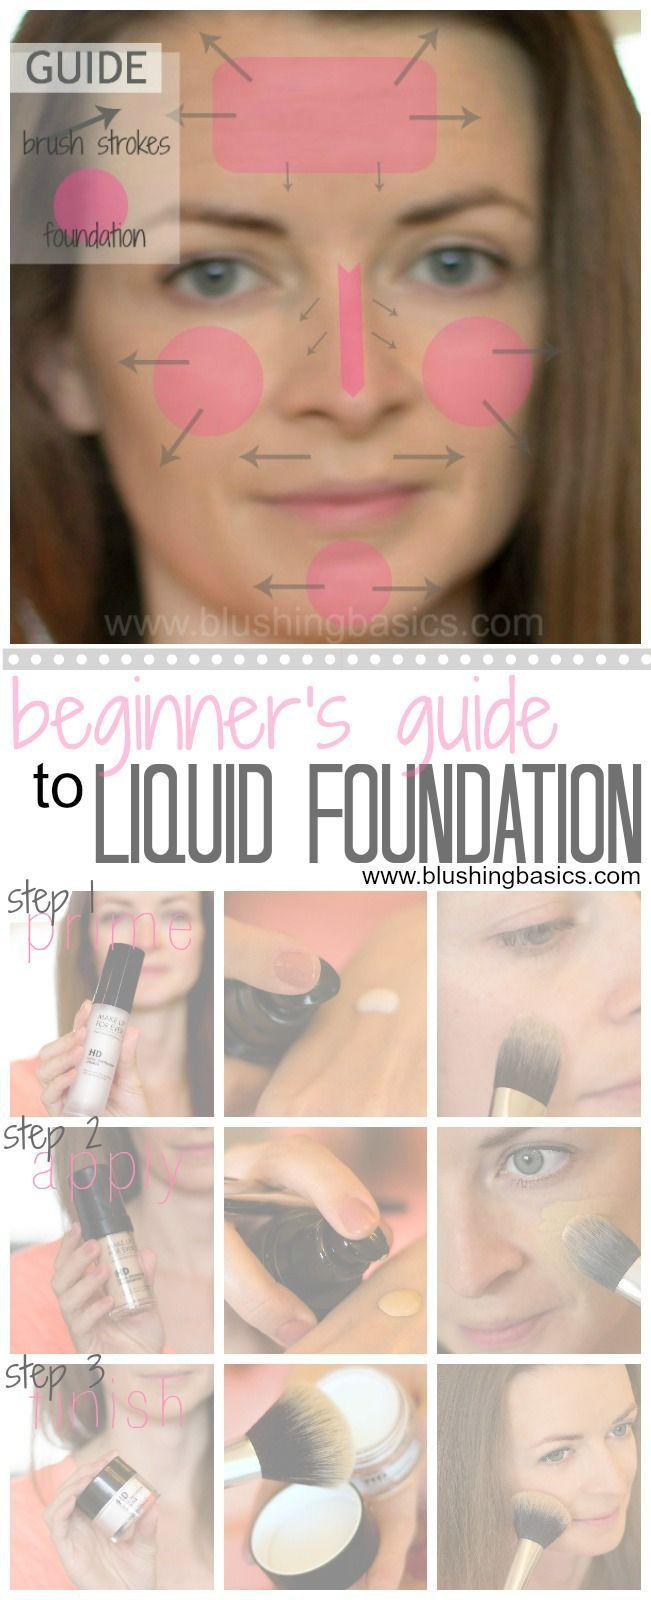 makeupit.com/Il9U8 | Here's the BEST foundation that you NEED to be using!